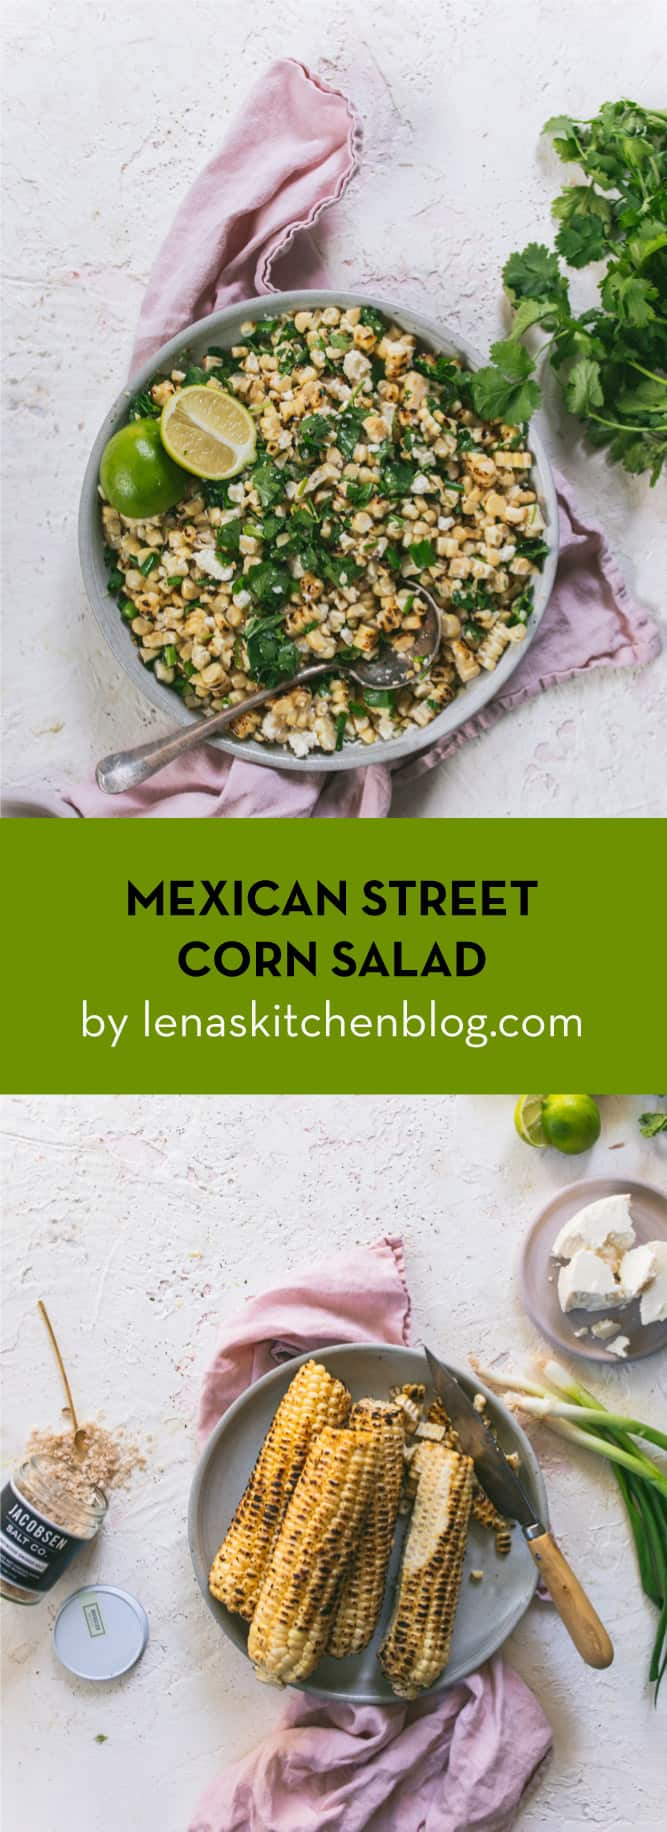 LENASKITCHEN MEXICAN STREET CORN SALAD